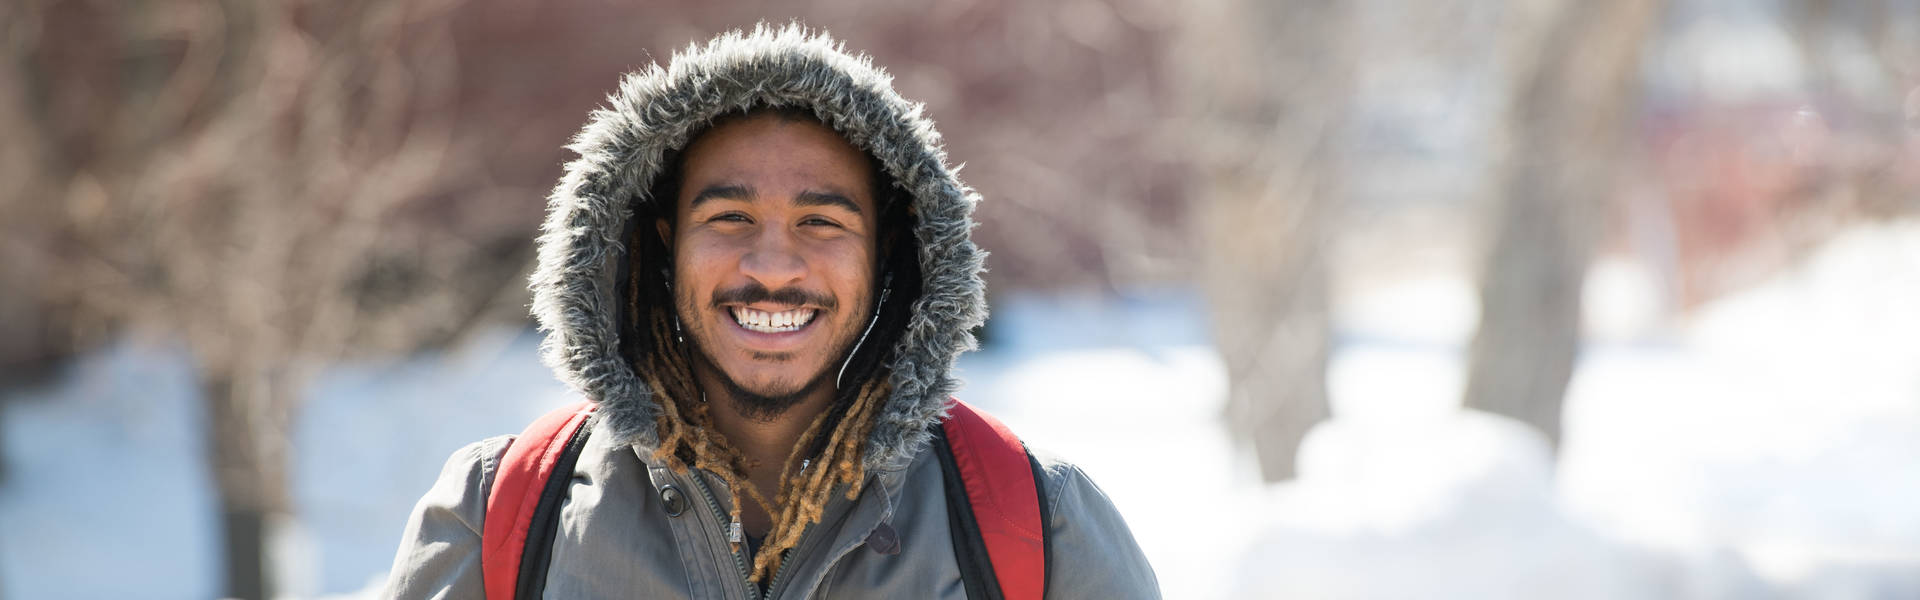 Male student on campus mall bundled up for cold weather